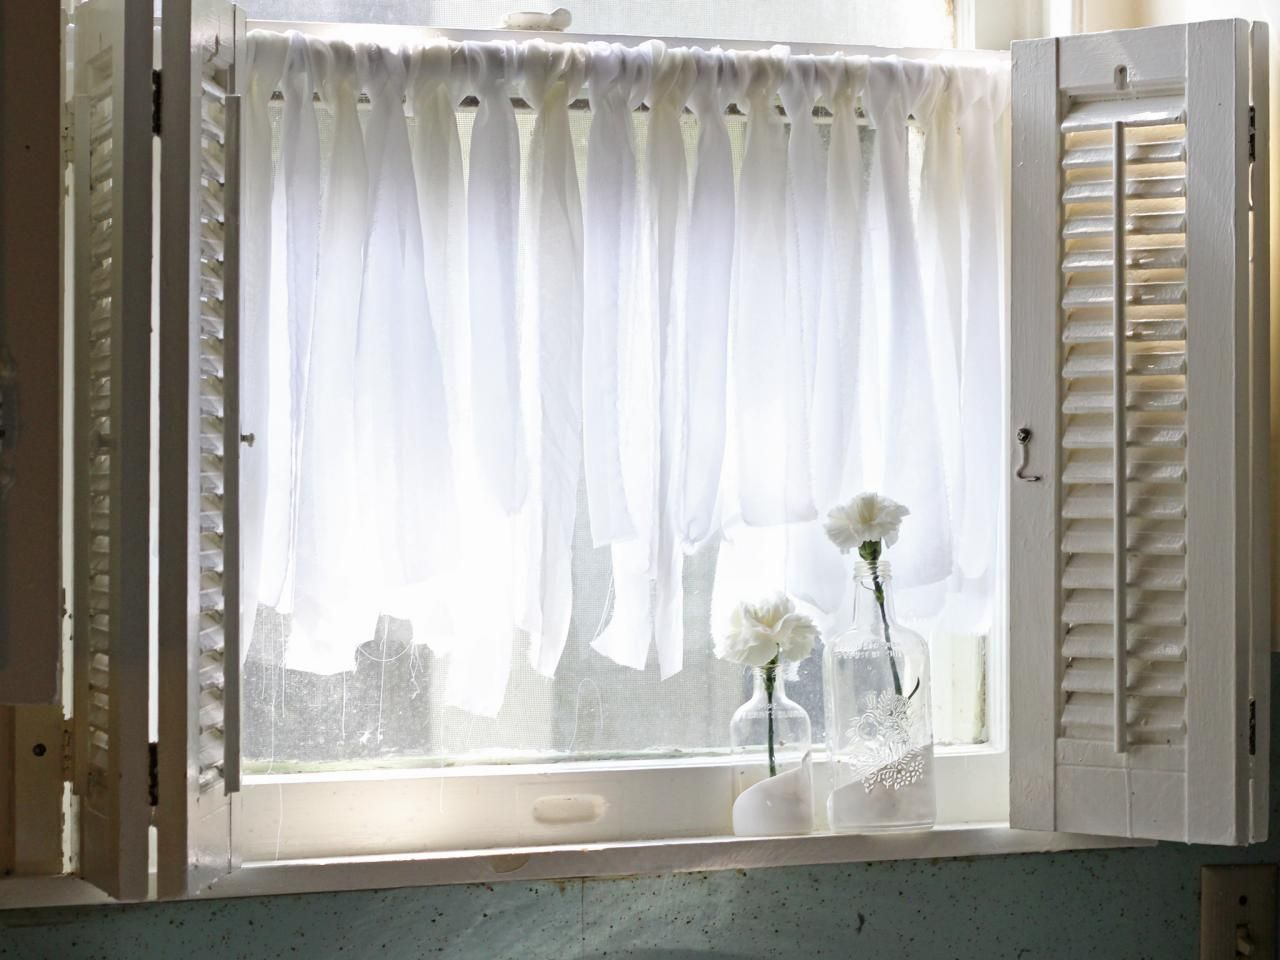 Cafe curtains for bathroom - 12 Easy Diy Window Treatments Kitchen Window Curtainscafe